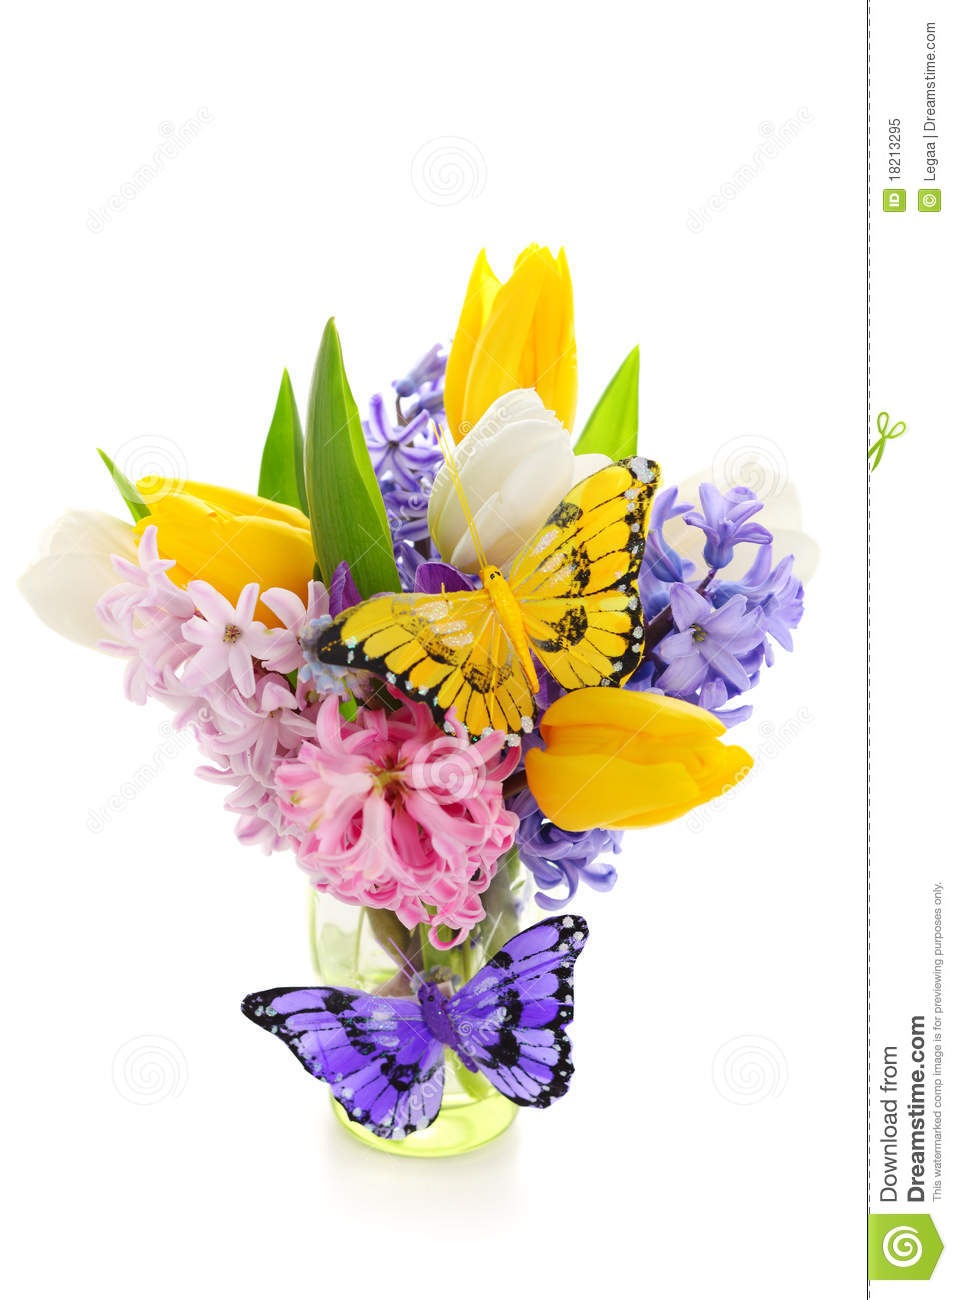 Pictures Of Beautiful Spring Flowers Butterfly Www Kidskunst Info